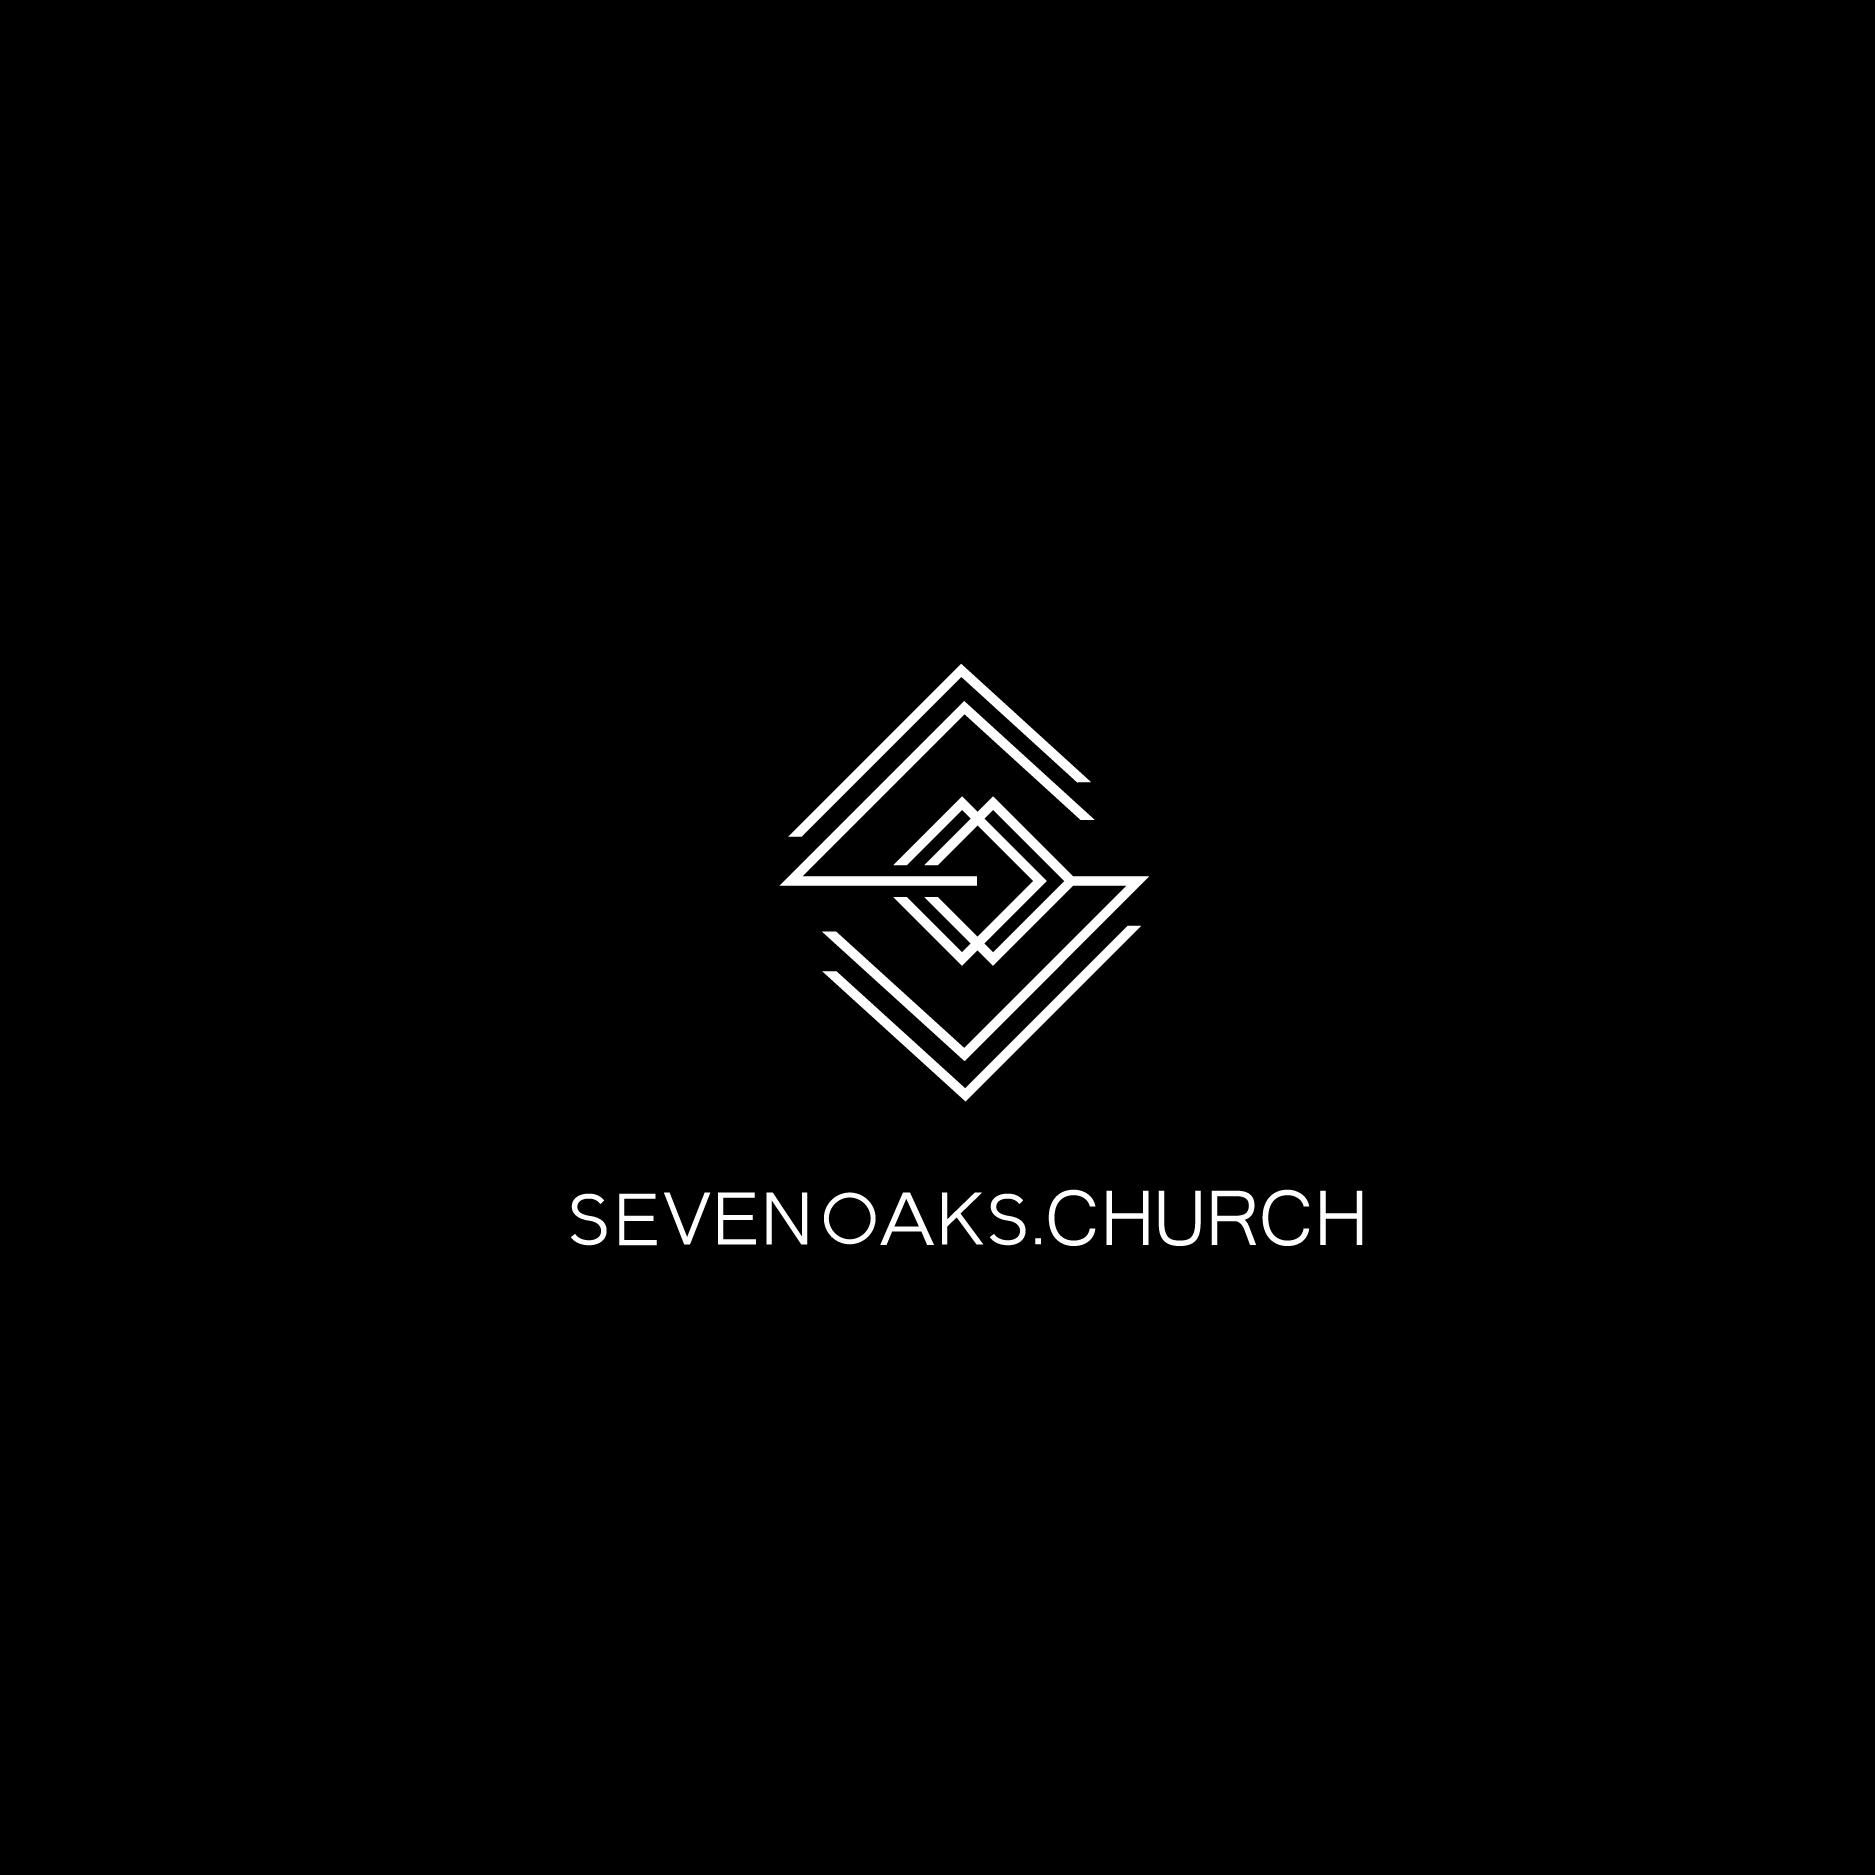 Clean minimalist abstract logo for plant church